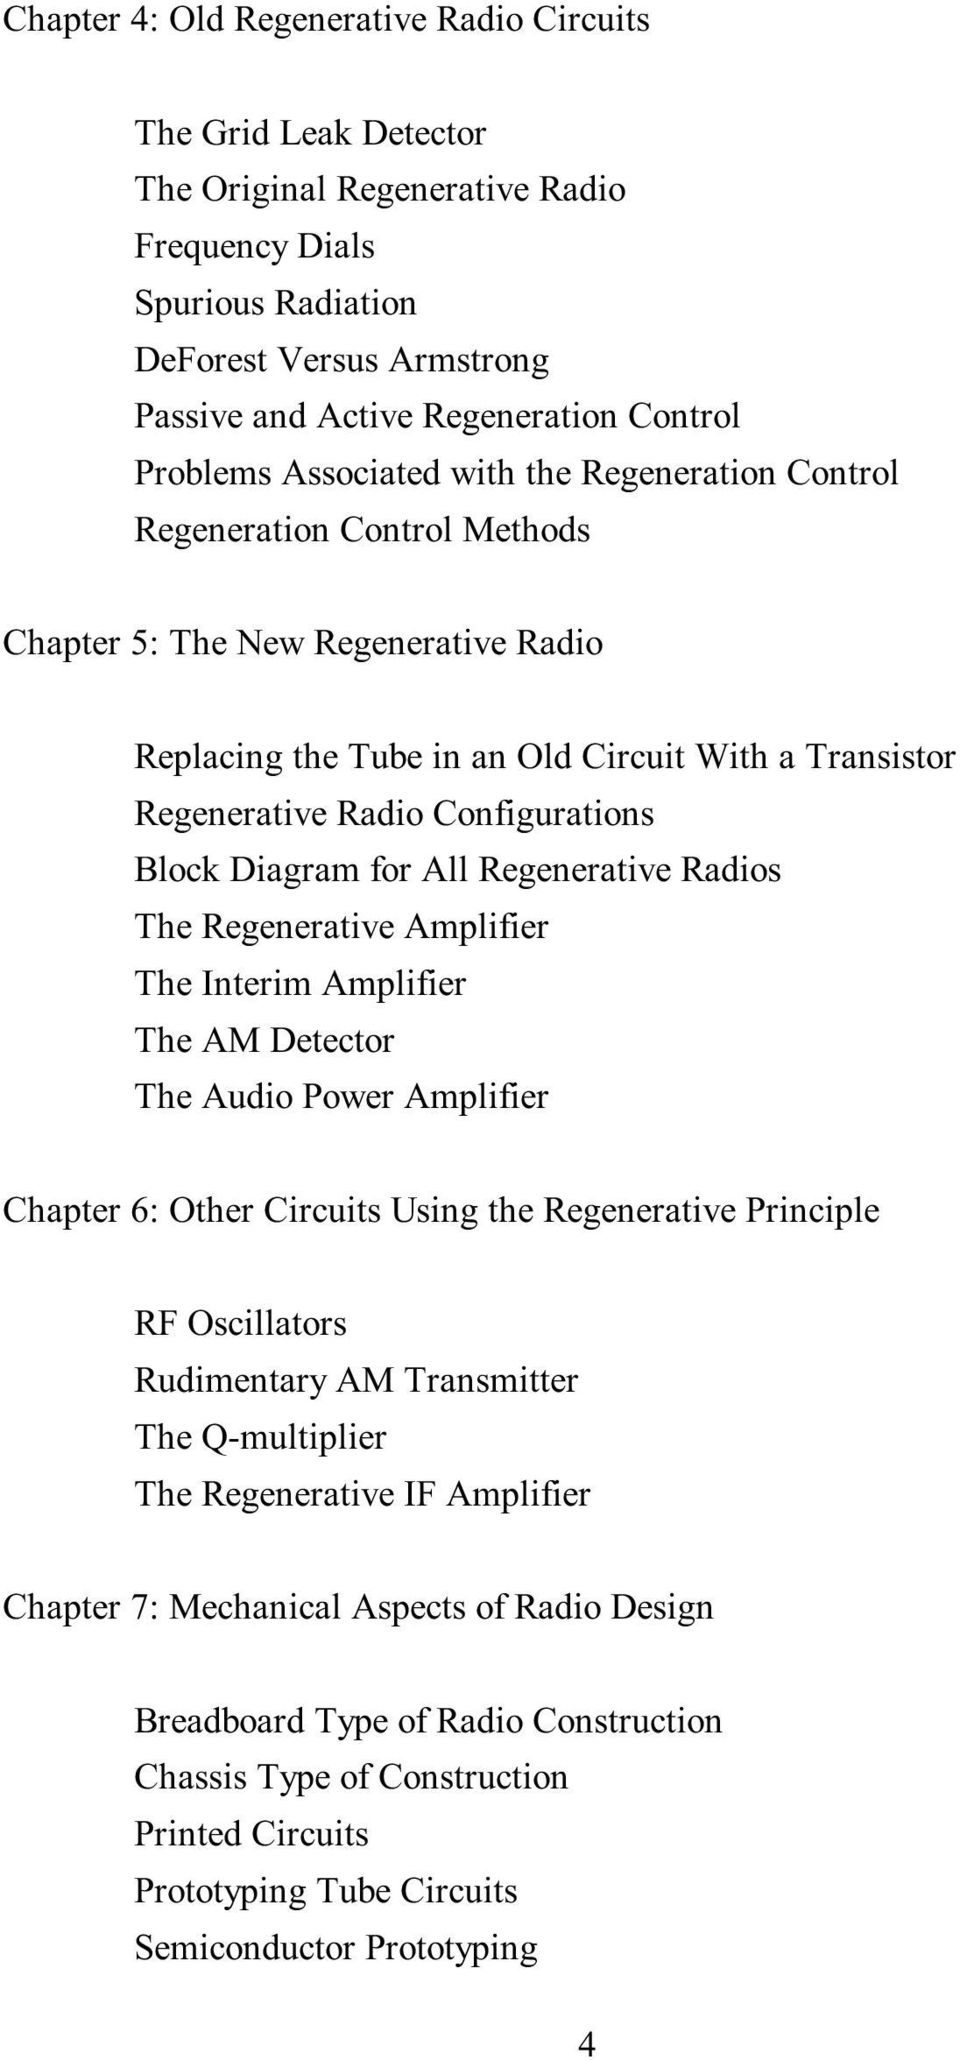 The New Radio Receiver Building Handbook Pdf Fm Transmitter Circuit Stripboard Layout 2 Configurations Block Diagram For All Regenerative Radios Amplifier Interim Am Detector